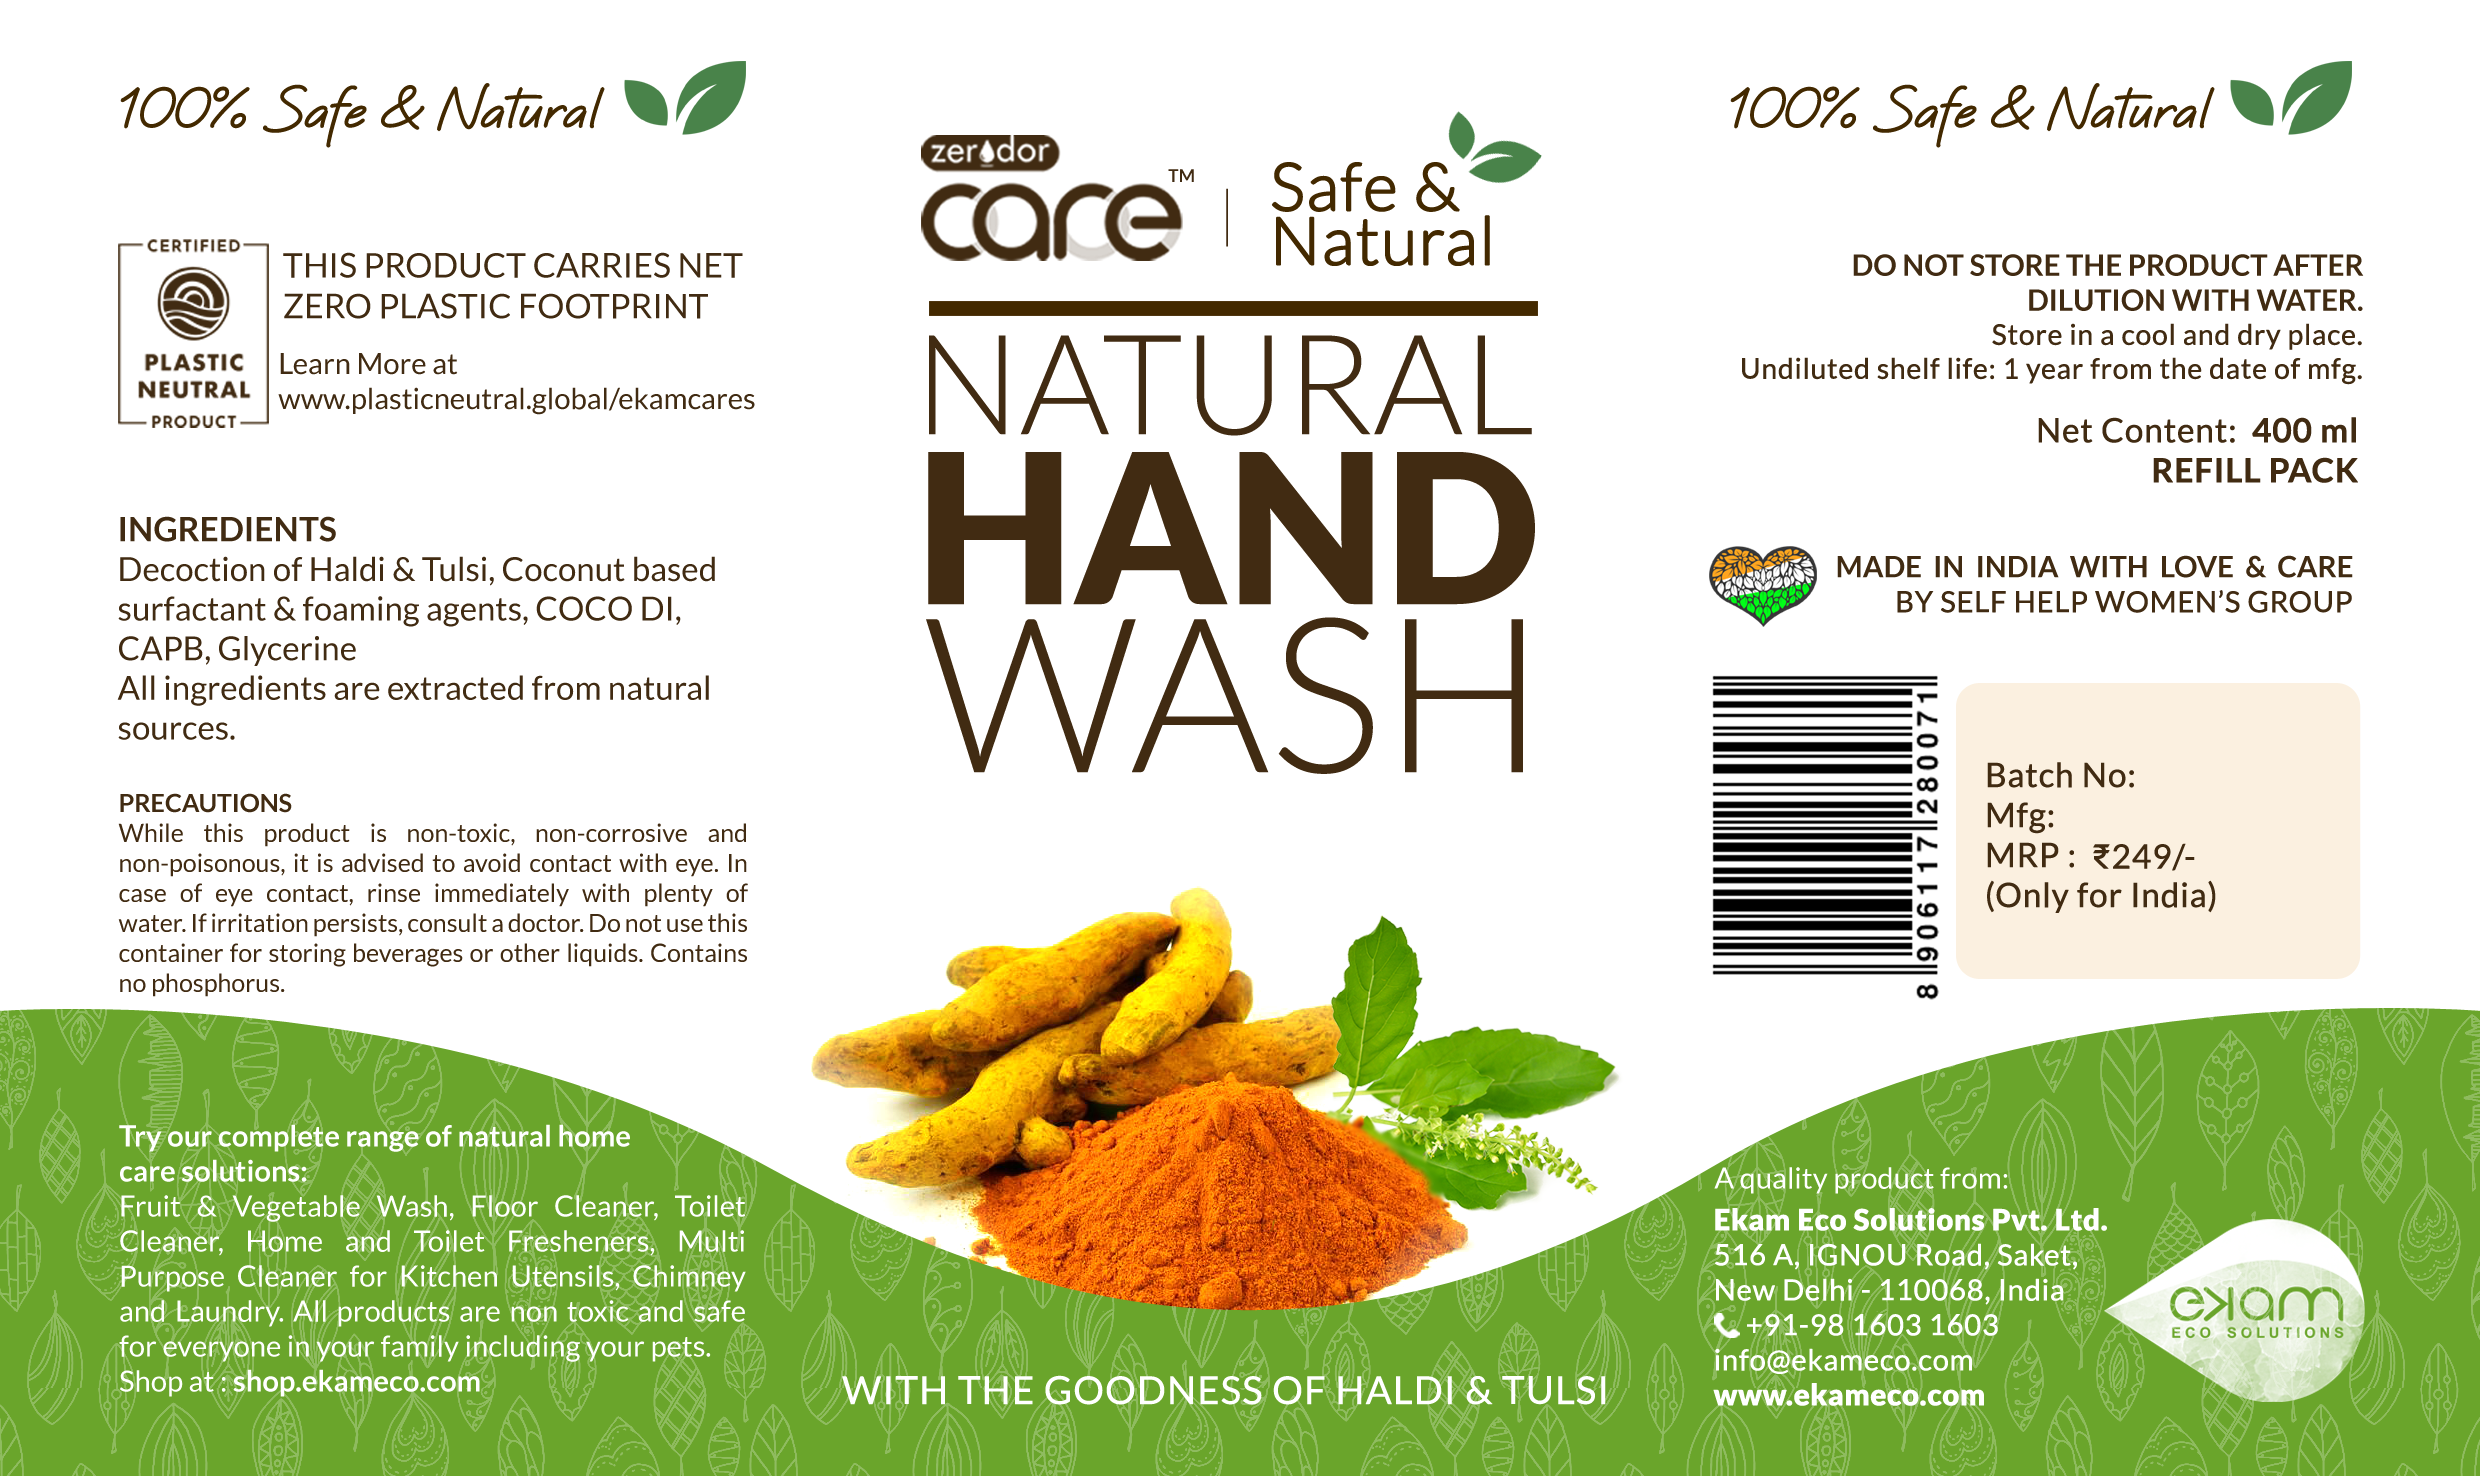 CARE Natural Hand Wash